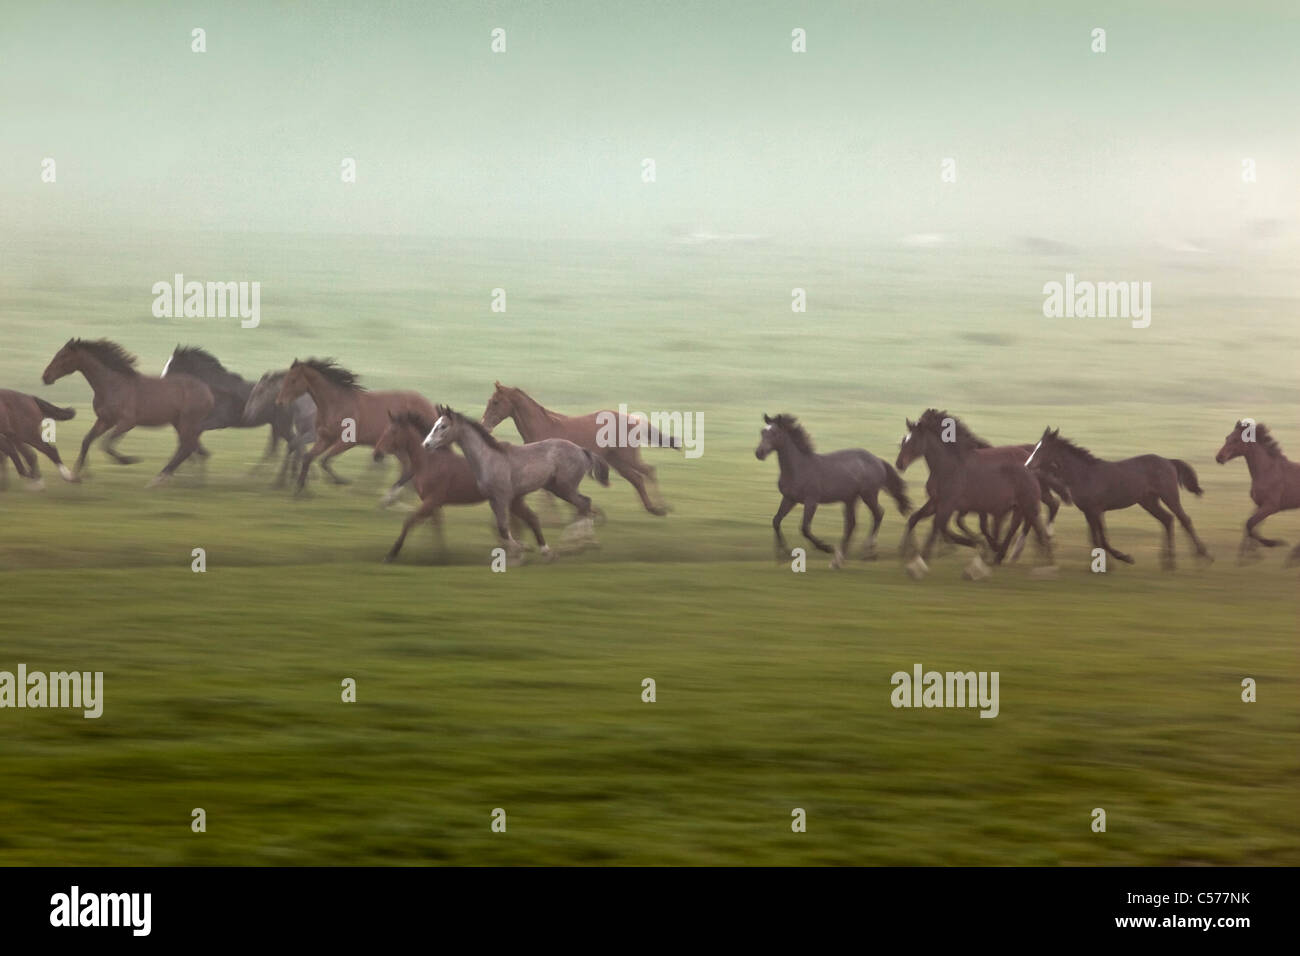 The Netherlands, Zalk, Young horses running in morning mist. - Stock Image